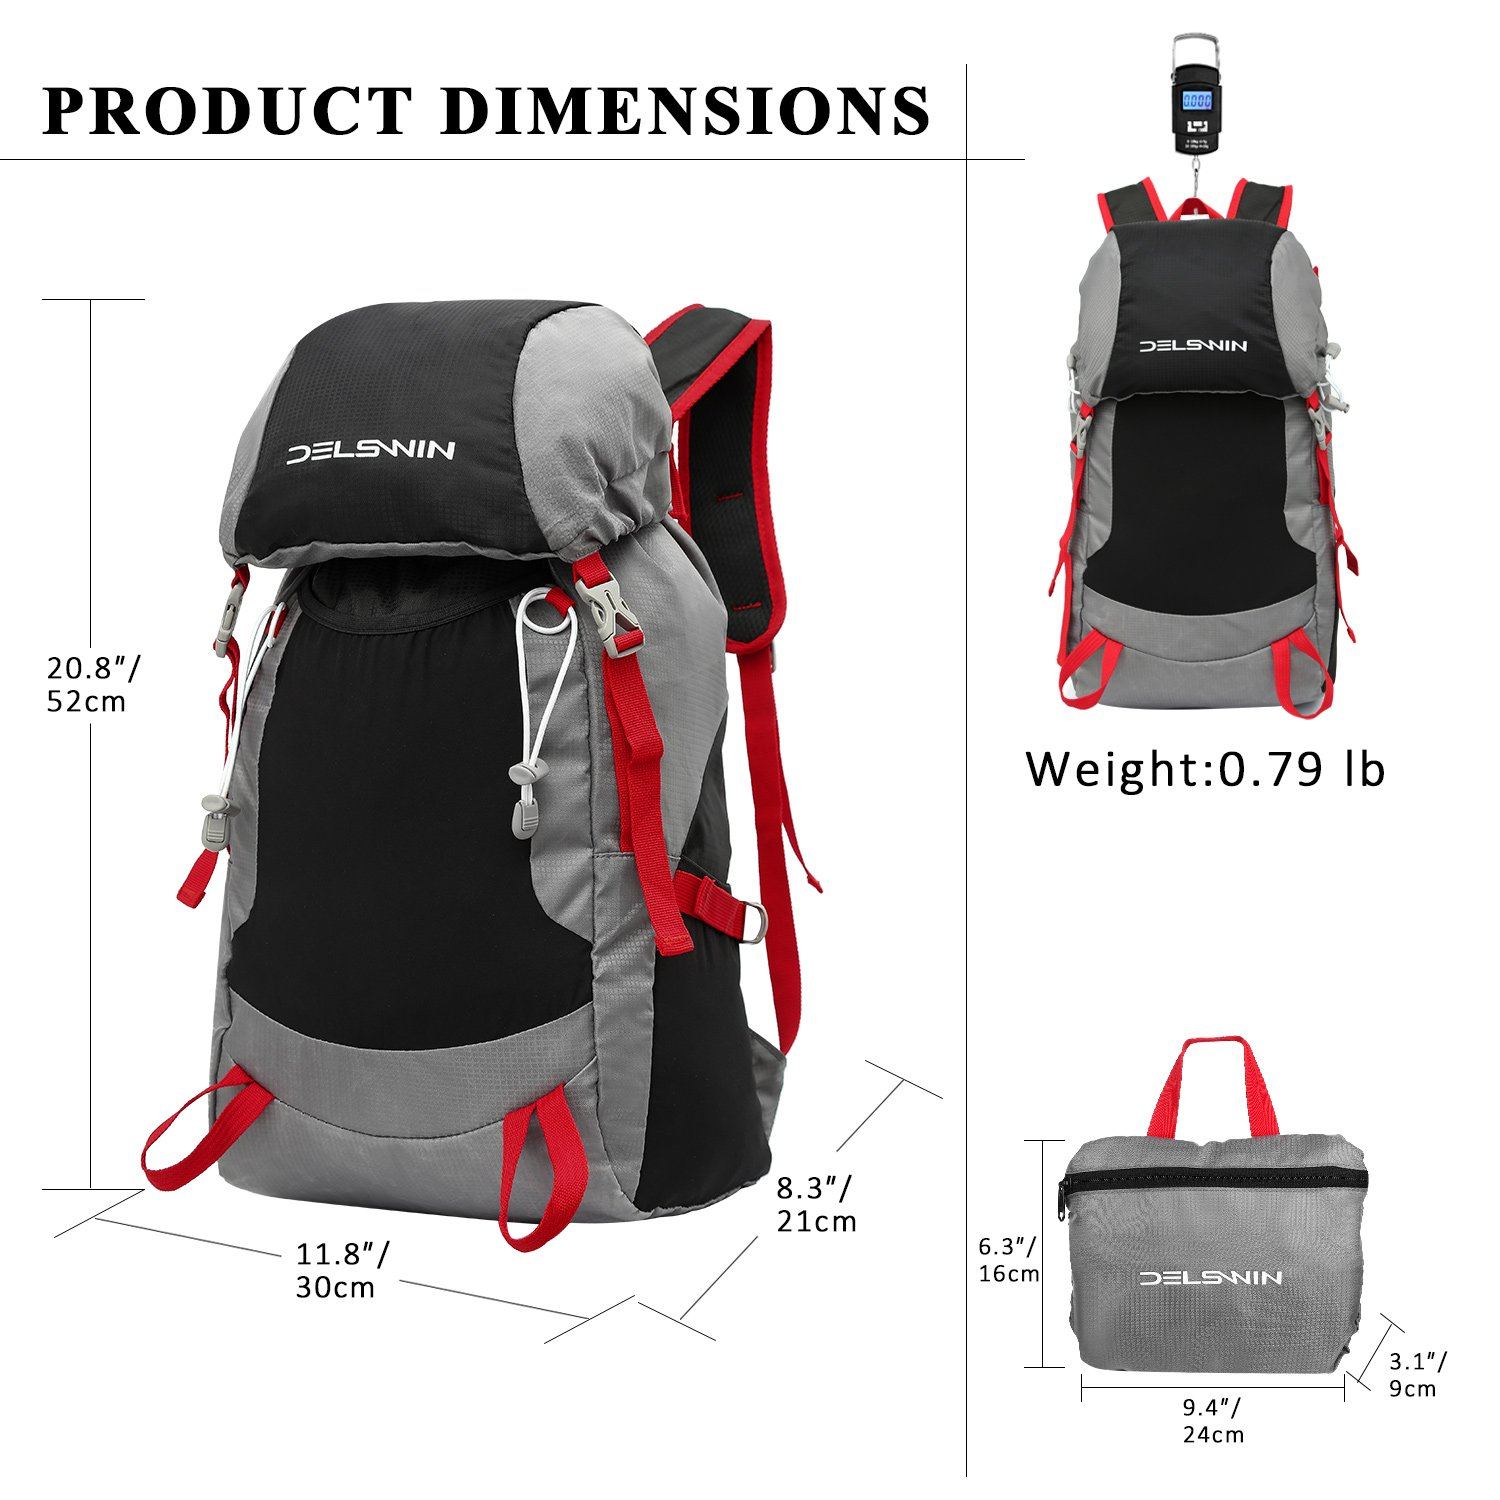 DELSWIN Waterproof Hiking Trekking Backpack 35L Lightweight Outdoor Folding Travel Daypack for Women Men